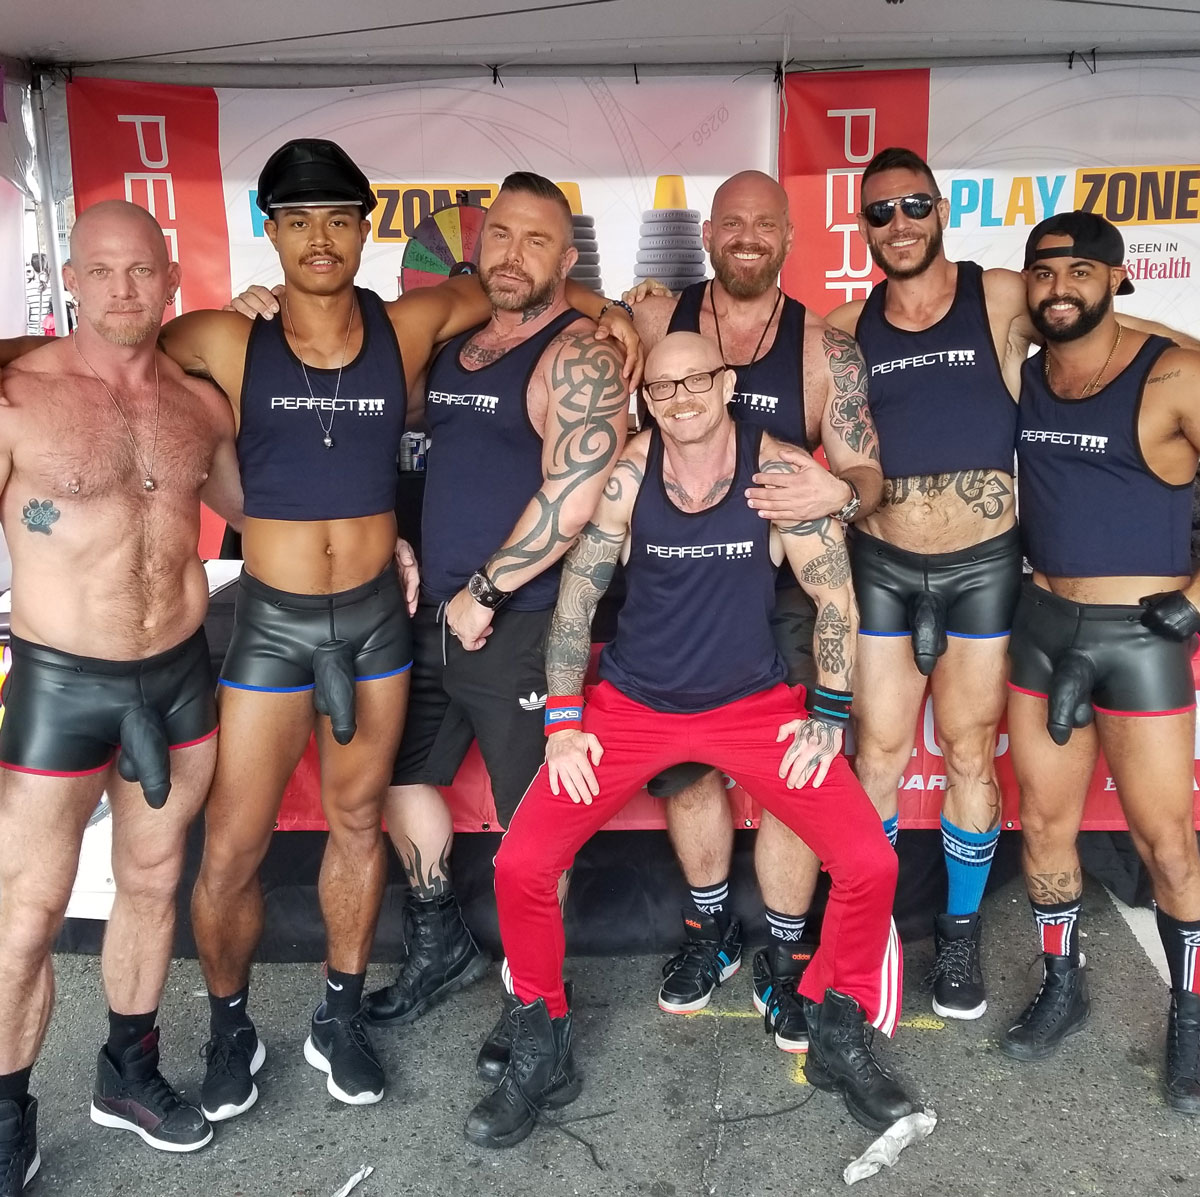 The Perfect Fit Brand booth gang at Folsom Street Fair